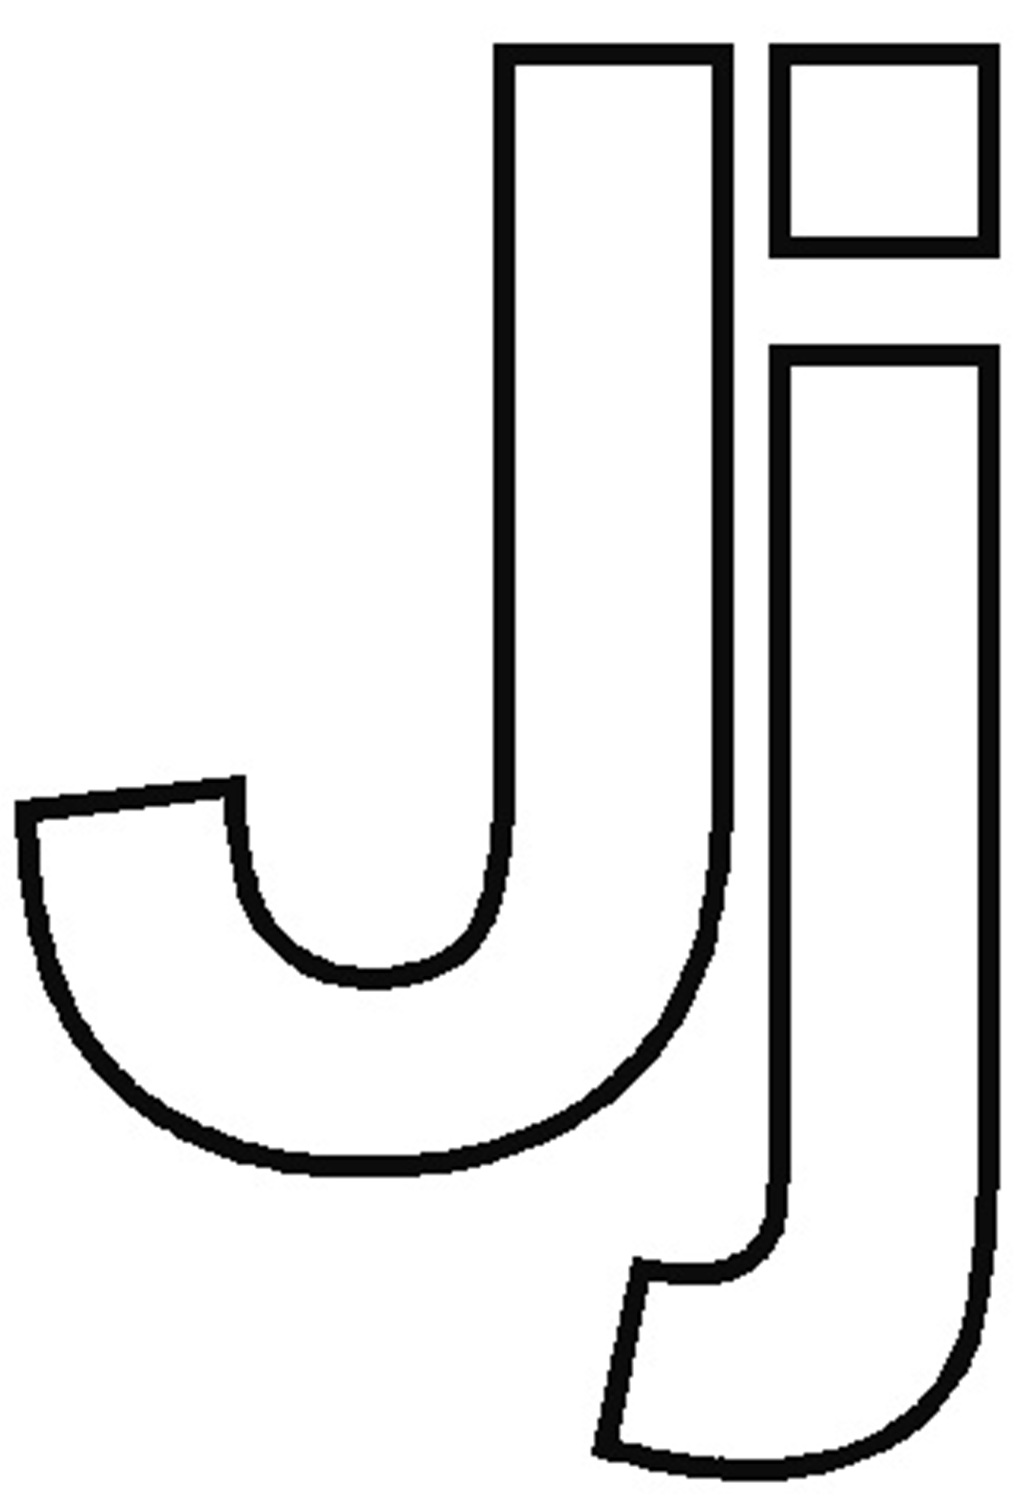 Worksheet About Letter J